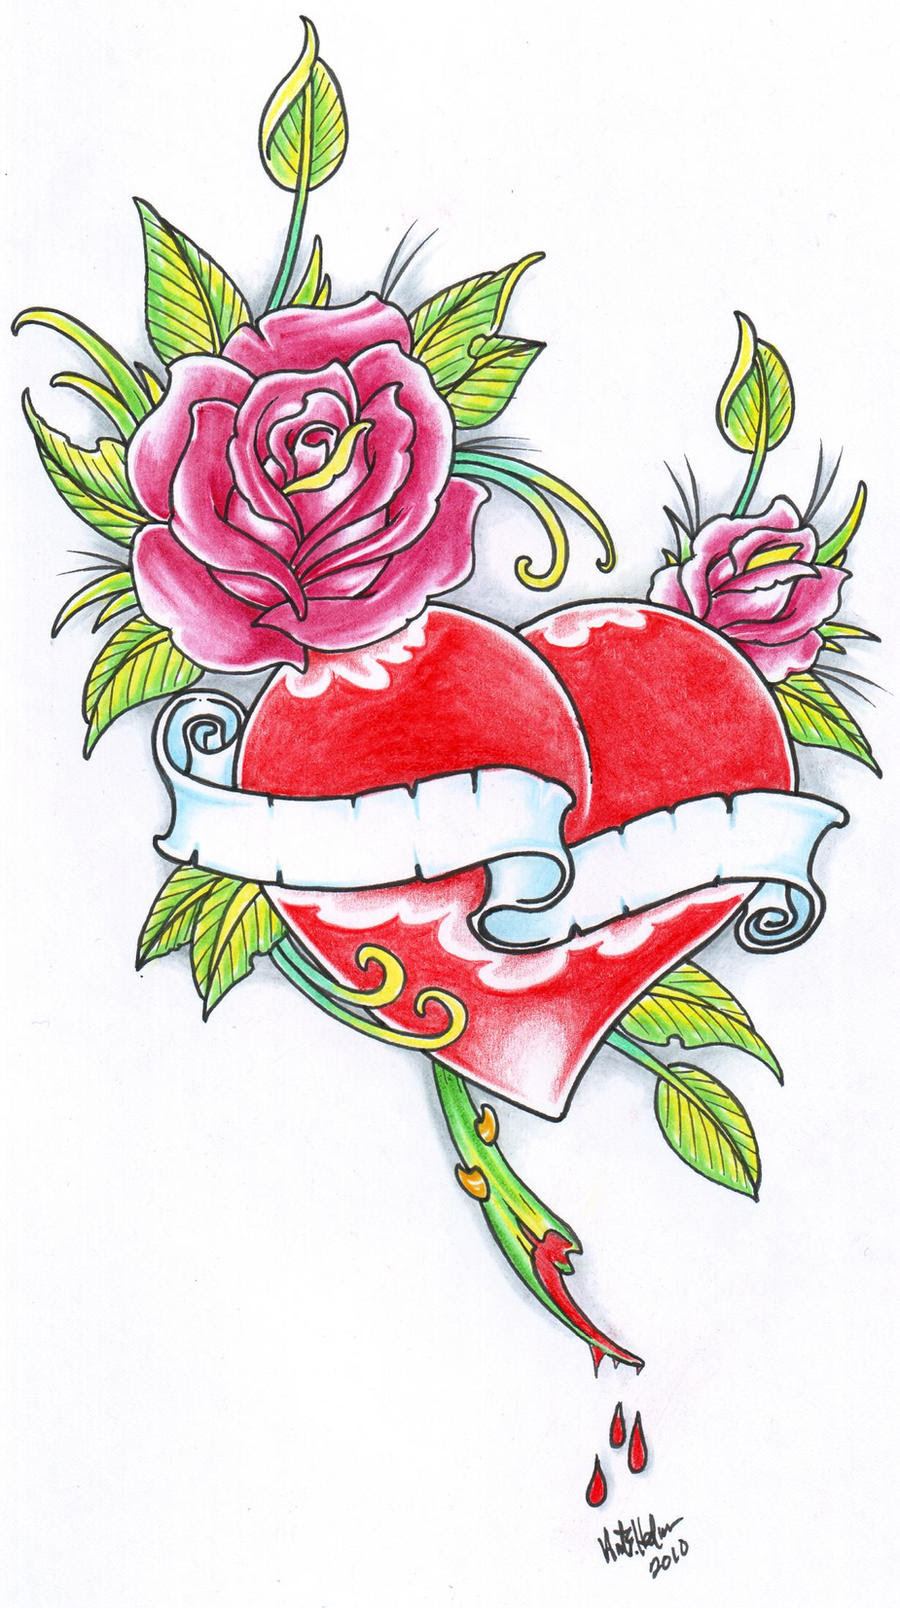 Pictures Of Hearts And Roses And Stars Tattoos Kidskunstinfo